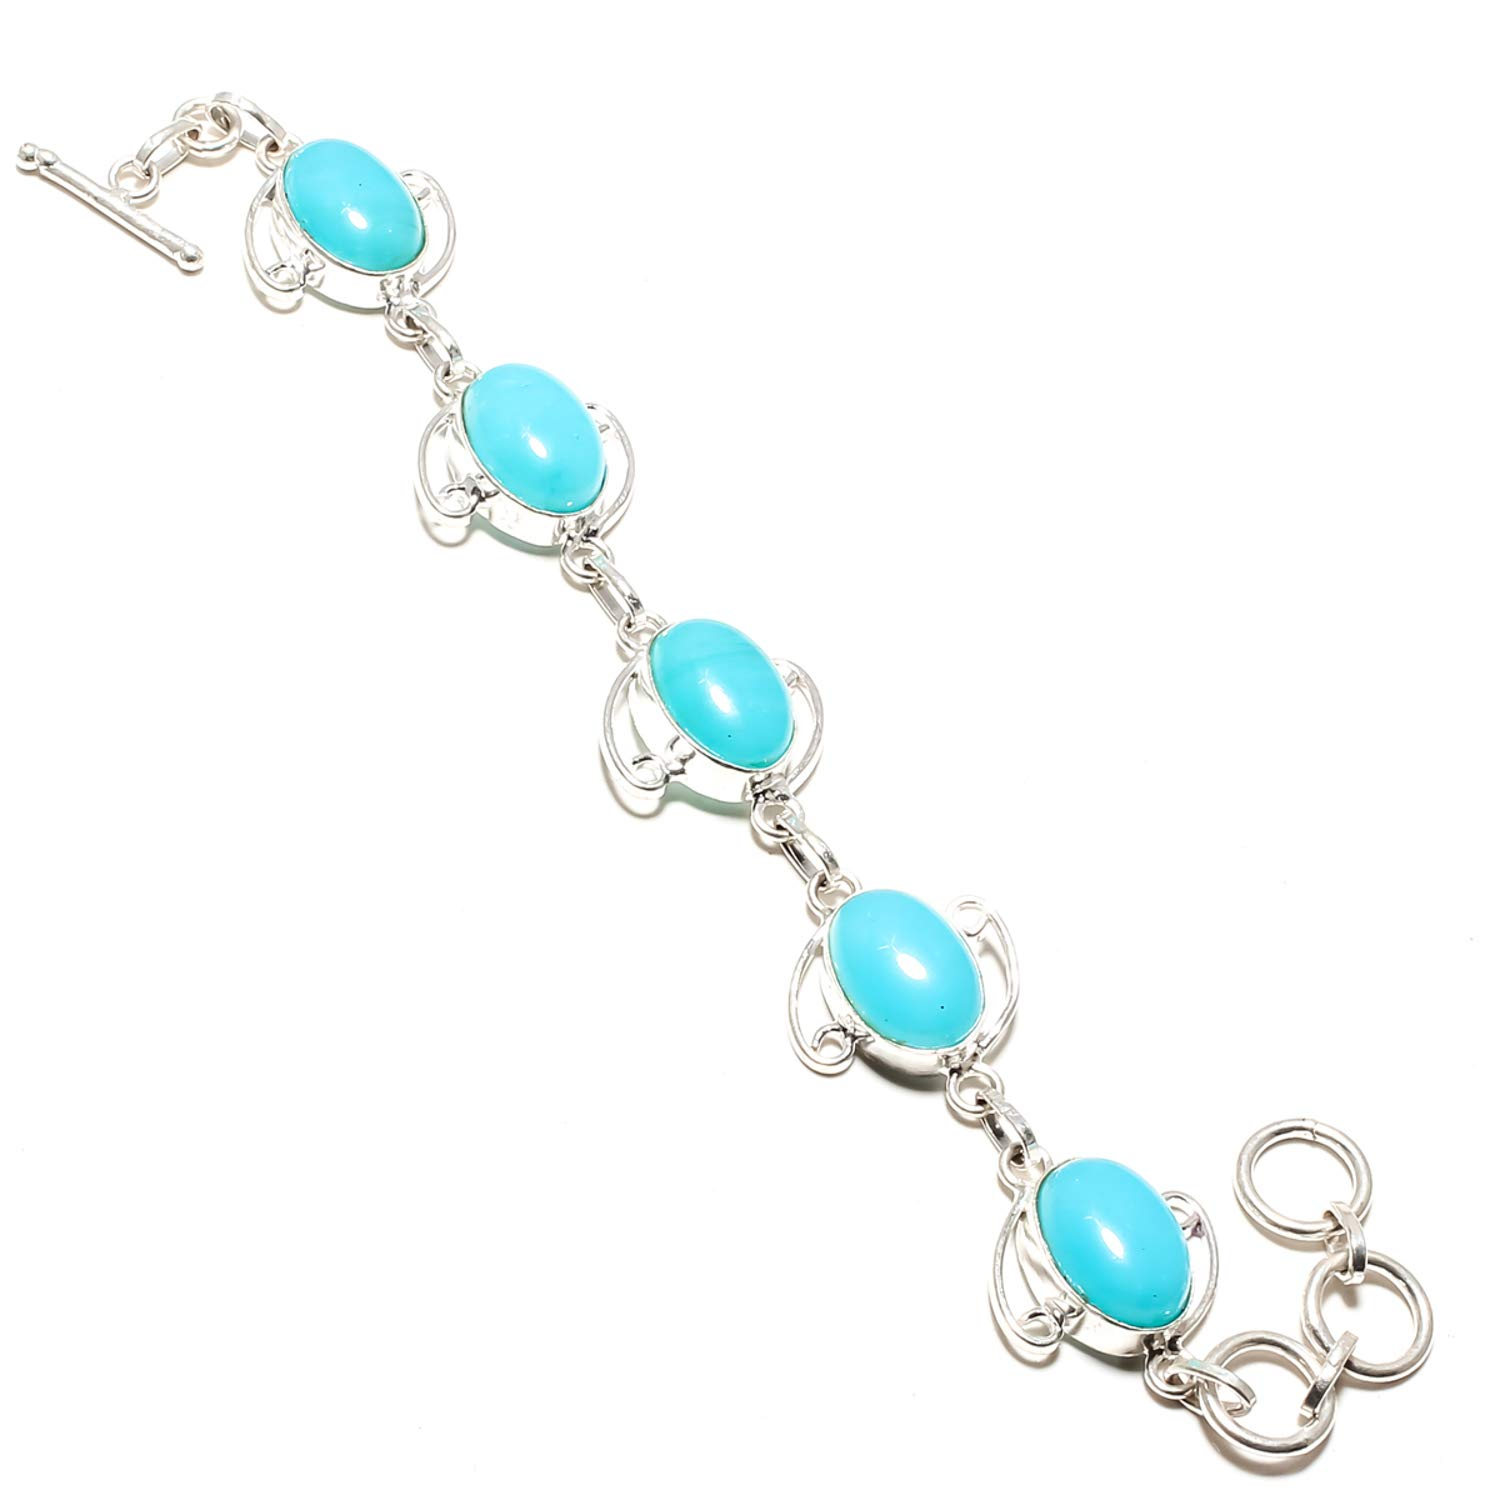 Adjustable and Flexible Length-Link Chain Bracelet SF-1057 Beautiful Blue Chalcedony Gemstone Bracelet Handmade 925 Sterling Silver Plated Jewelry